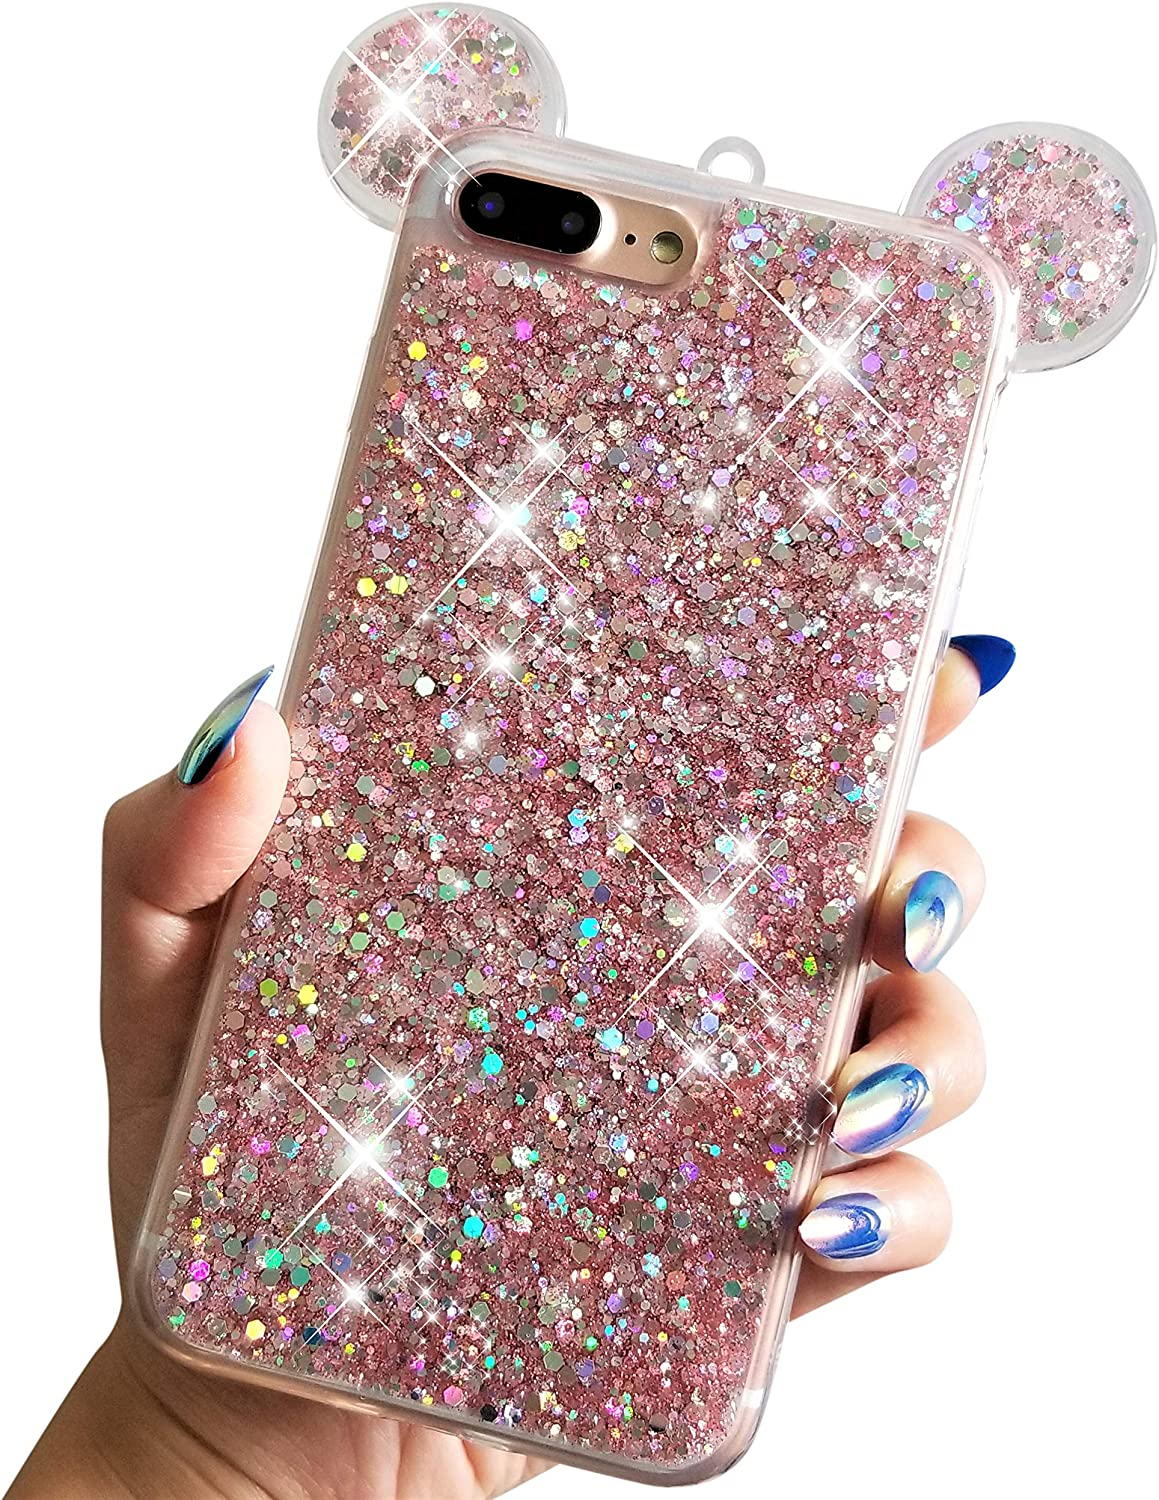 "for iPhone 7 Plus 5.5"" for iPhone 8 Plus 5.5"" Soft TPU Holographic Dots Minnie Mickey Ears Shiny Glitter Disney Back Cover Case (Pink)"